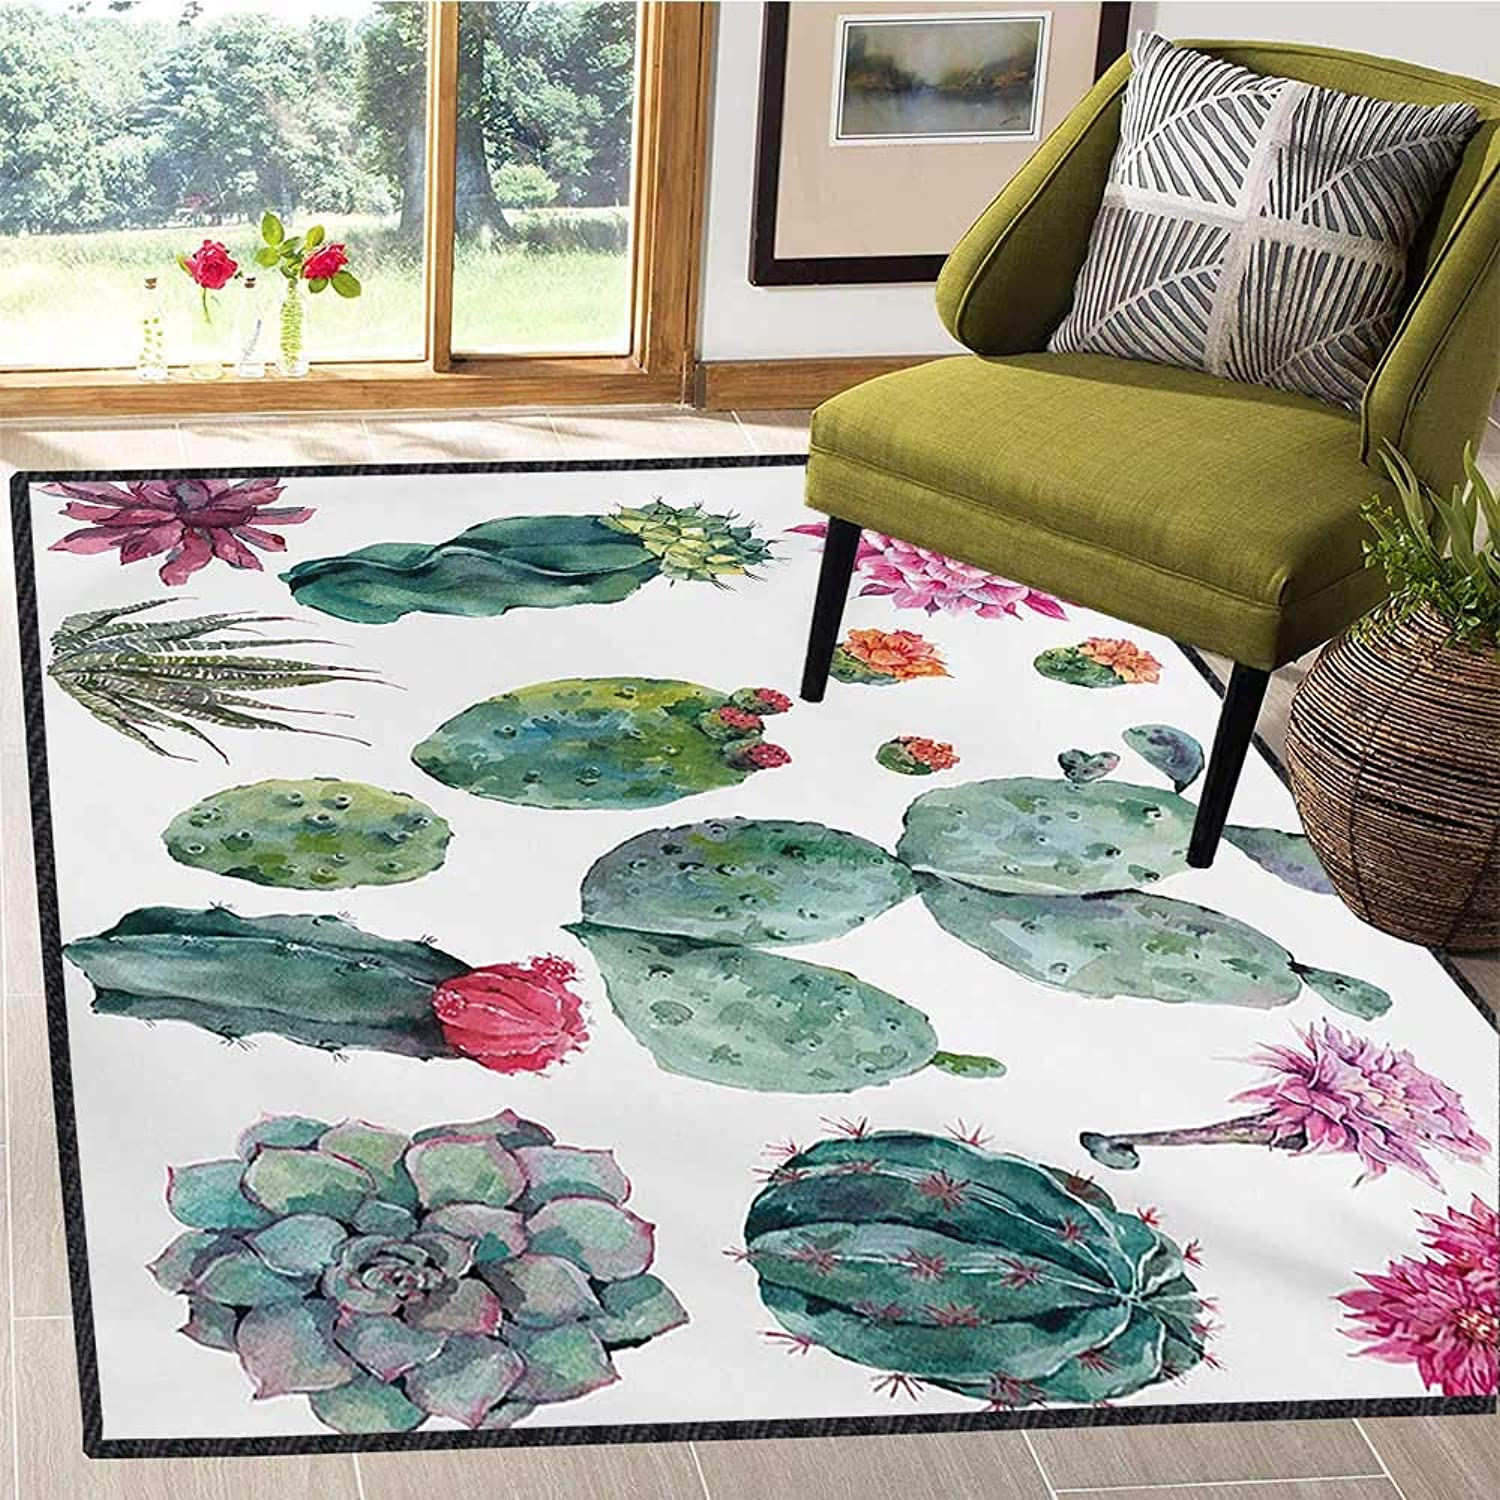 Nature, Door Mats for Inside, Desert Botanical Herbal Cartoon Style Cactus Plant Flower with Spikes Print, Door Mats for Inside Non Slip Backing 6x8 Ft Green and Pink